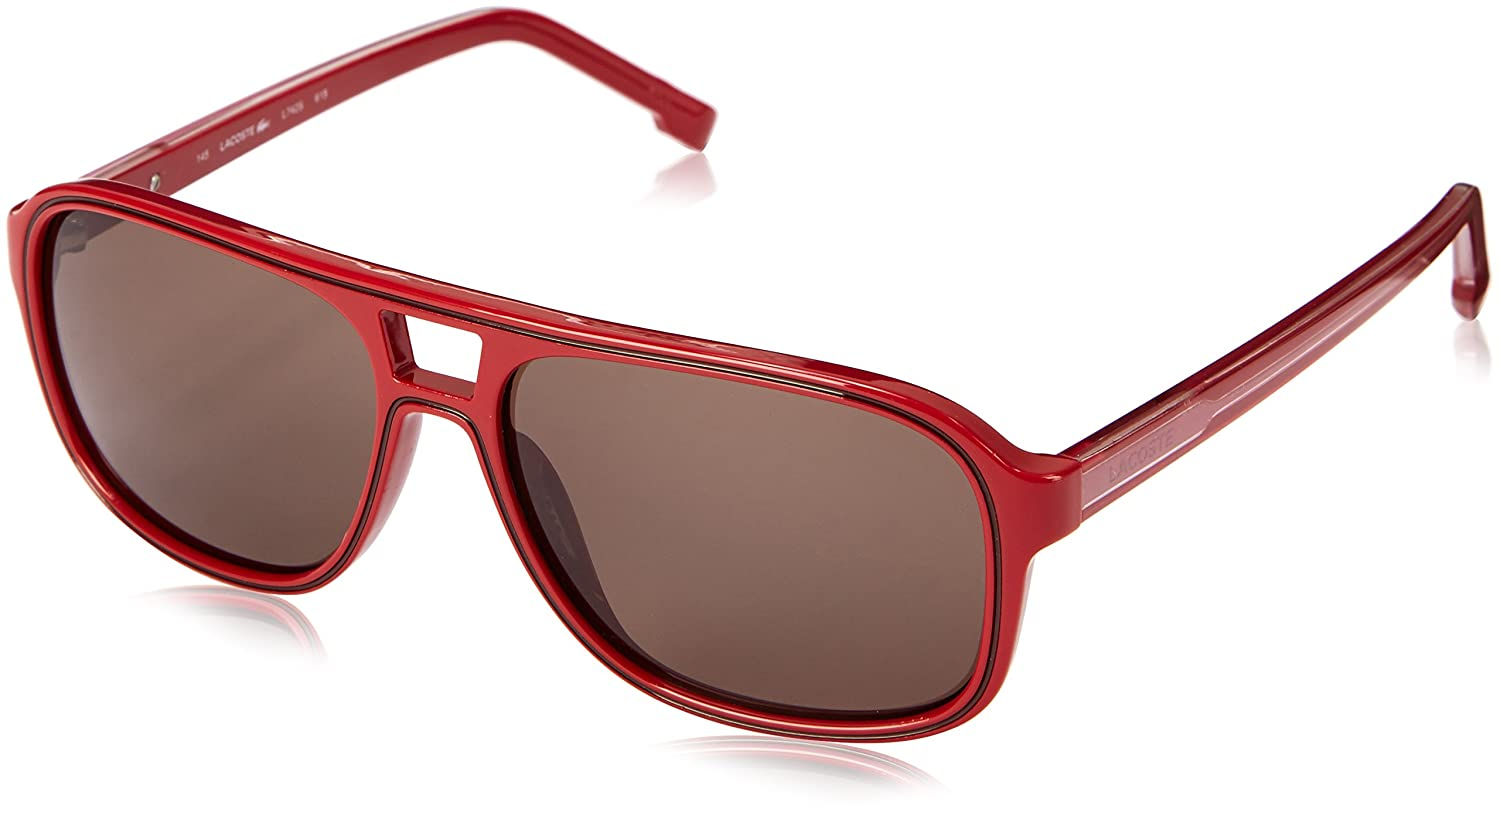 b6168680672 Lacoste L742S 615 Red L742S Aviator Sunglasses Lens Category 3 Lens  Mirrored  Amazon.co.uk  Clothing